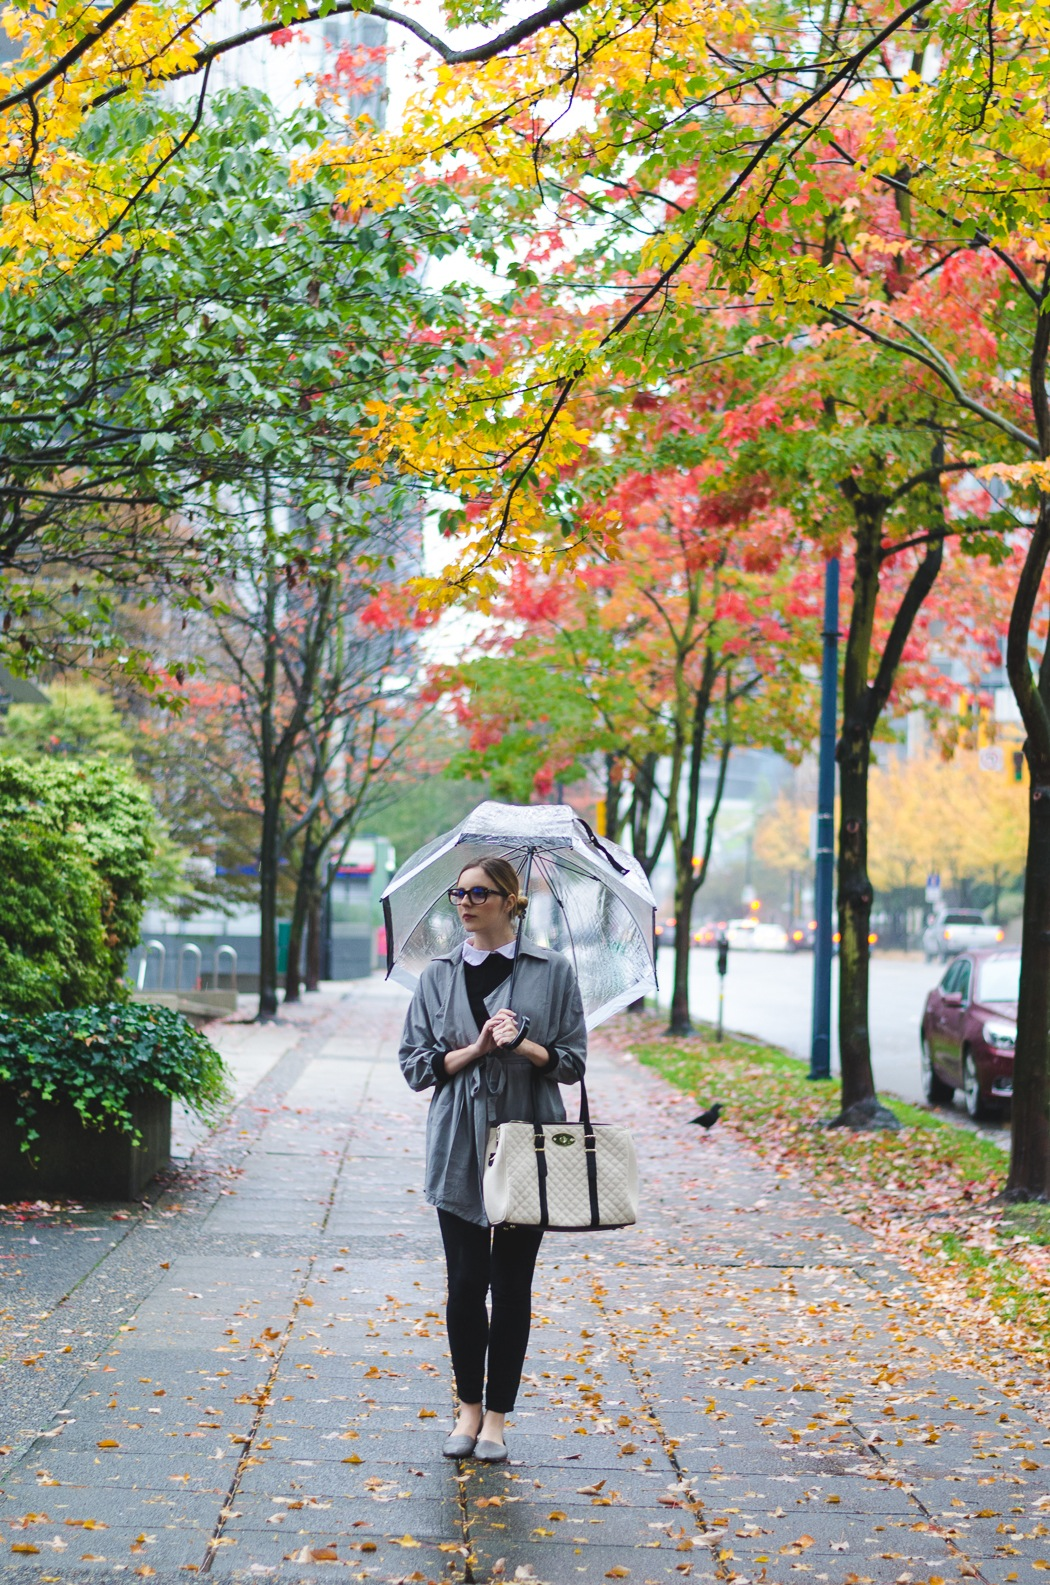 the urban umbrella style blog, vancouver style blog, vancouver style blogger, vancouver fashion blog, vancouver lifestyle blog, vancouver health blog, vancouver fitness blog, vancouver travel blog, canadian fashion blog, canadian style blog, canadian lifestyle blog, canadian health blog, canadian fitness blog, canadian travel blog, bree aylwin, how to look your best at the office, office outfit ideas, office outfits, professional outfits, chic office outfits, best health blogs, best travel blogs, top fashion blogs, top style blogs, top lifestyle blogs, top fitness blogs, top health blogs, top travel blogs